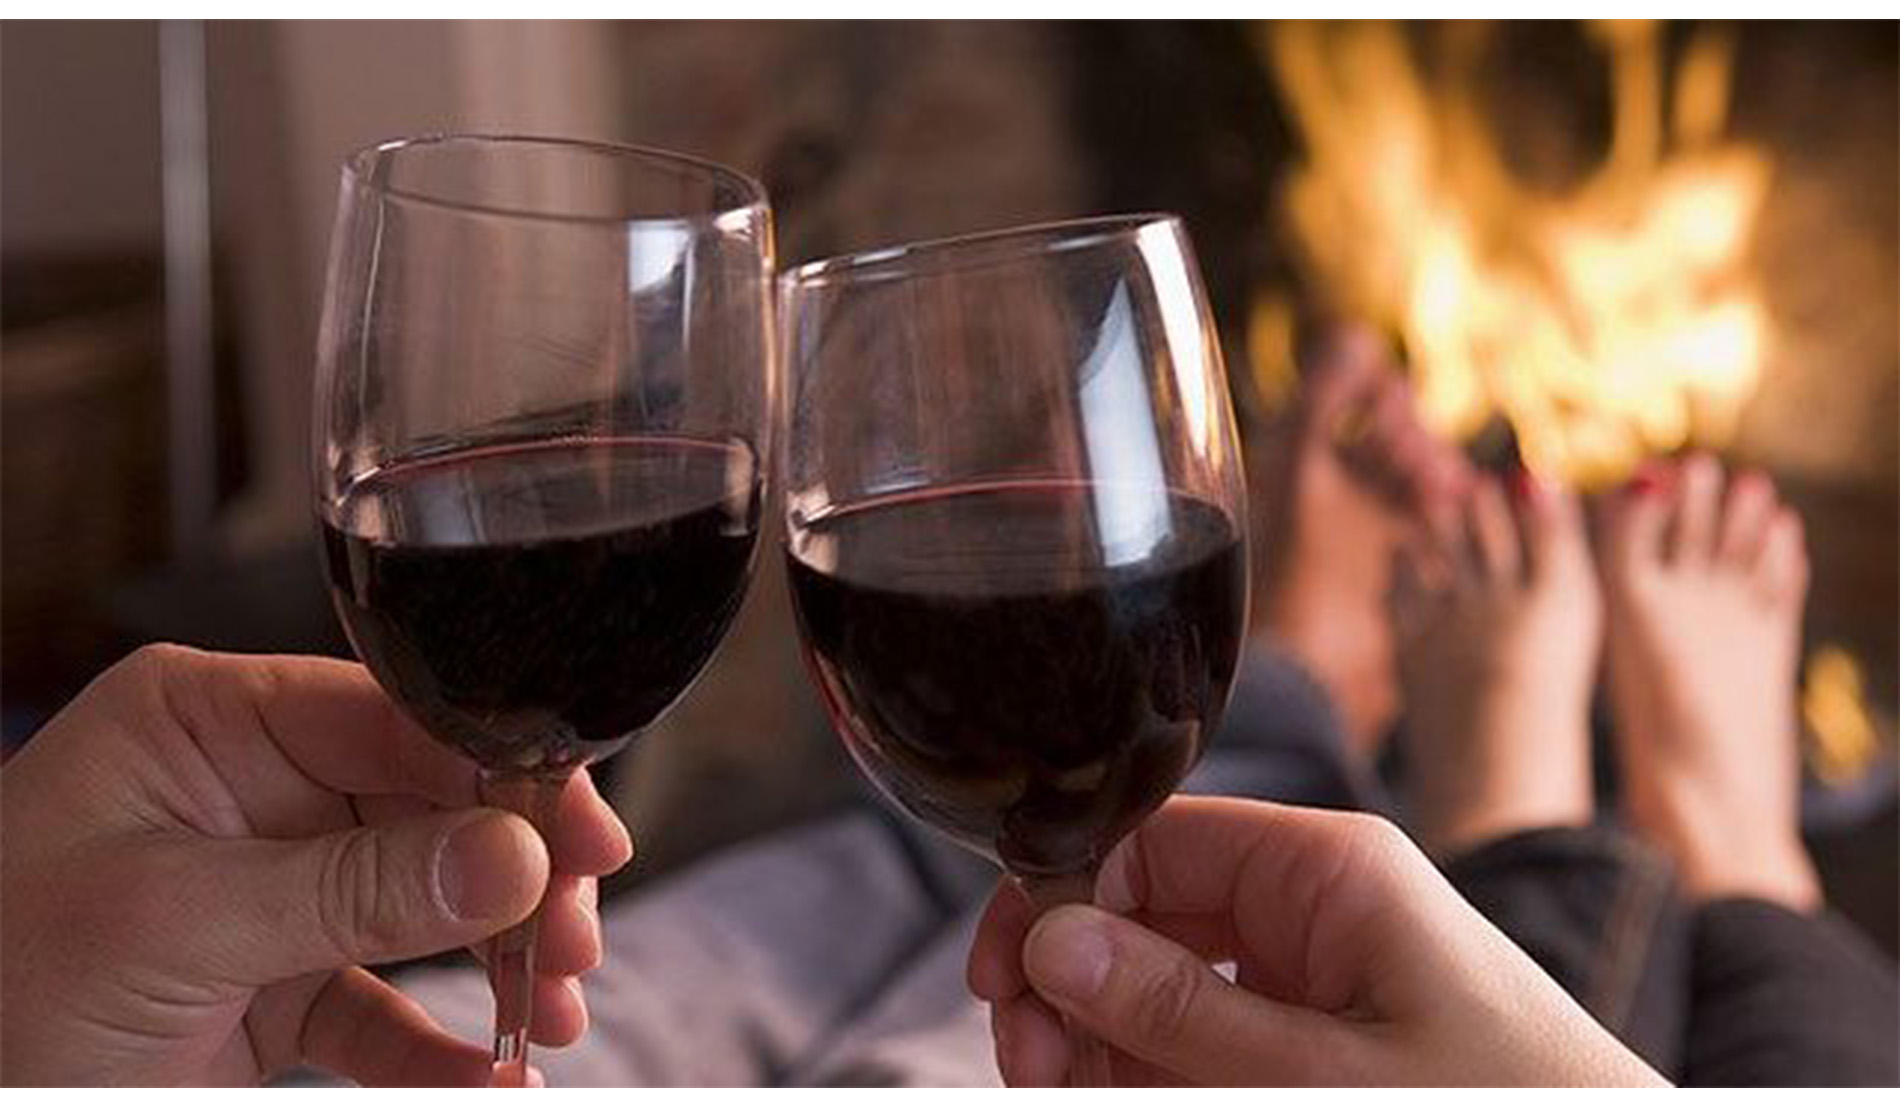 Couple in front of fireplace toasting with red wine in glasses